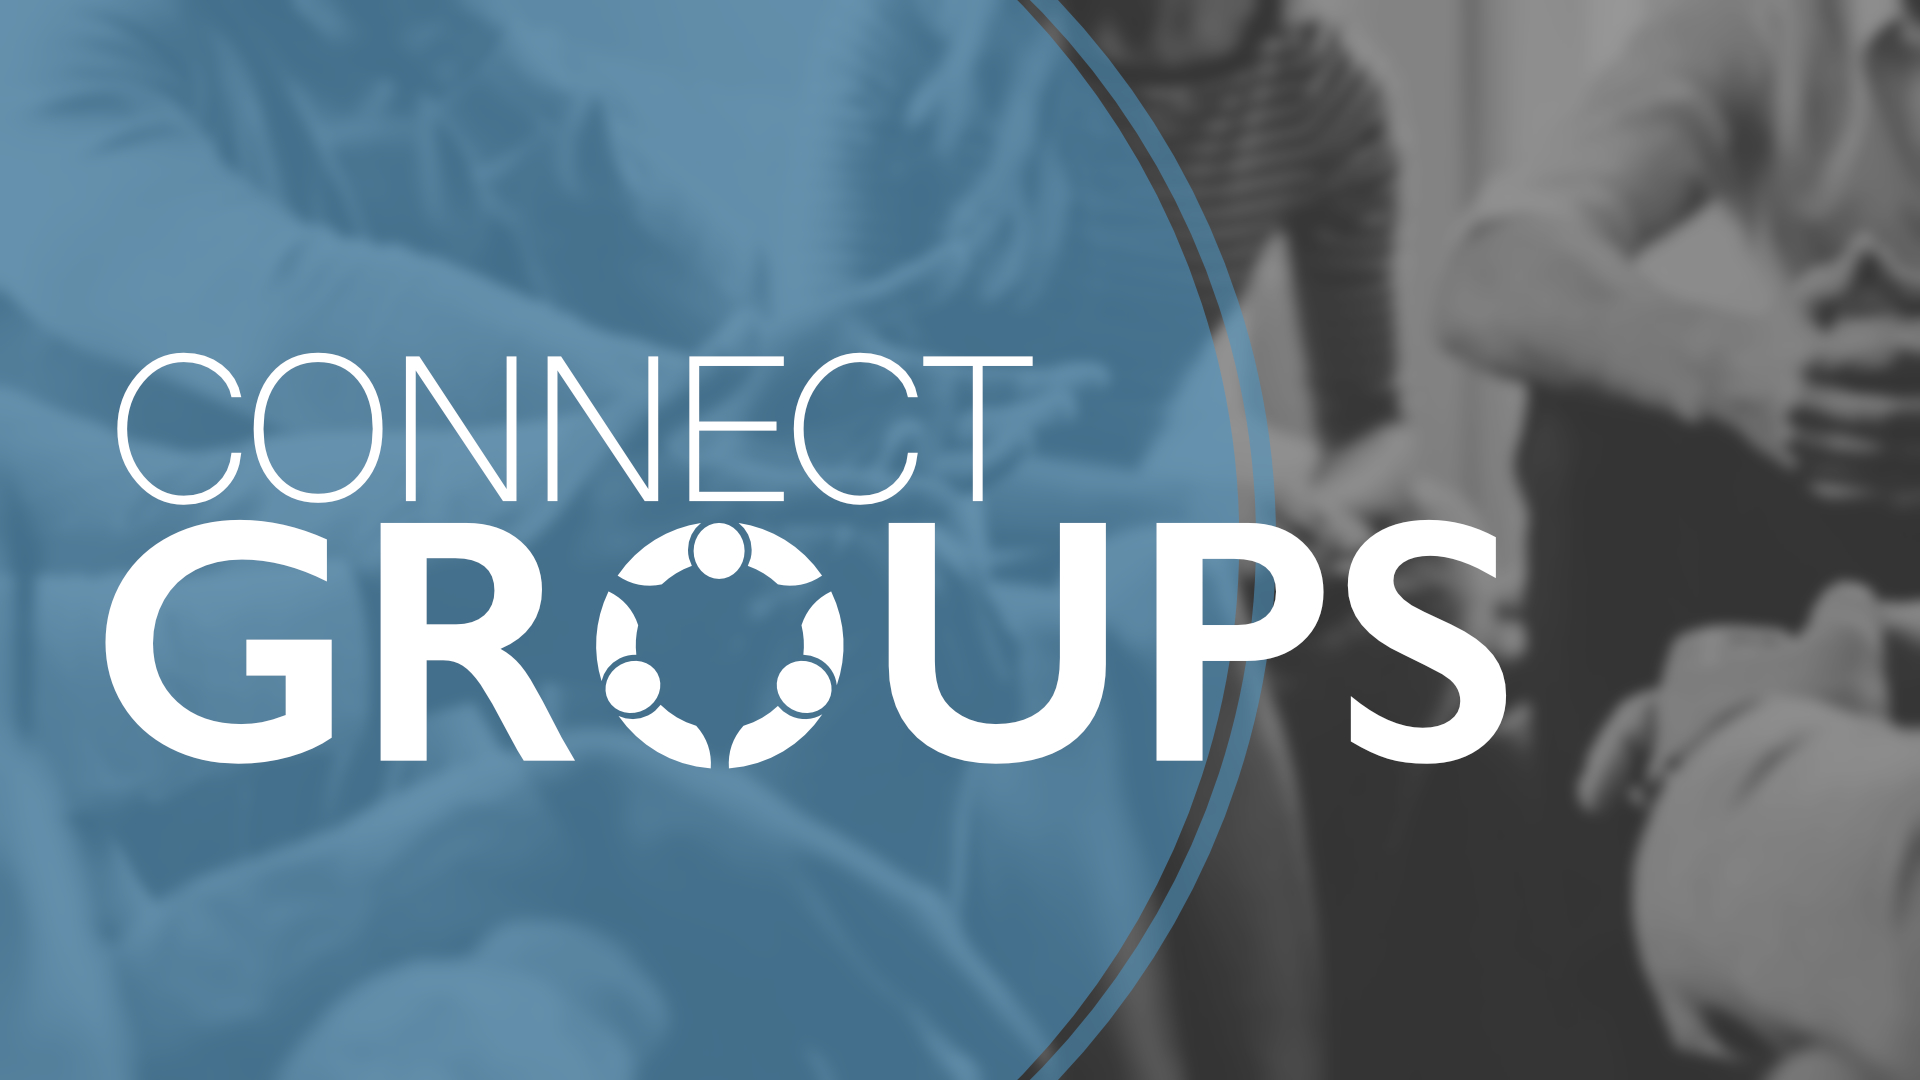 CONNECT_GROUPS.2